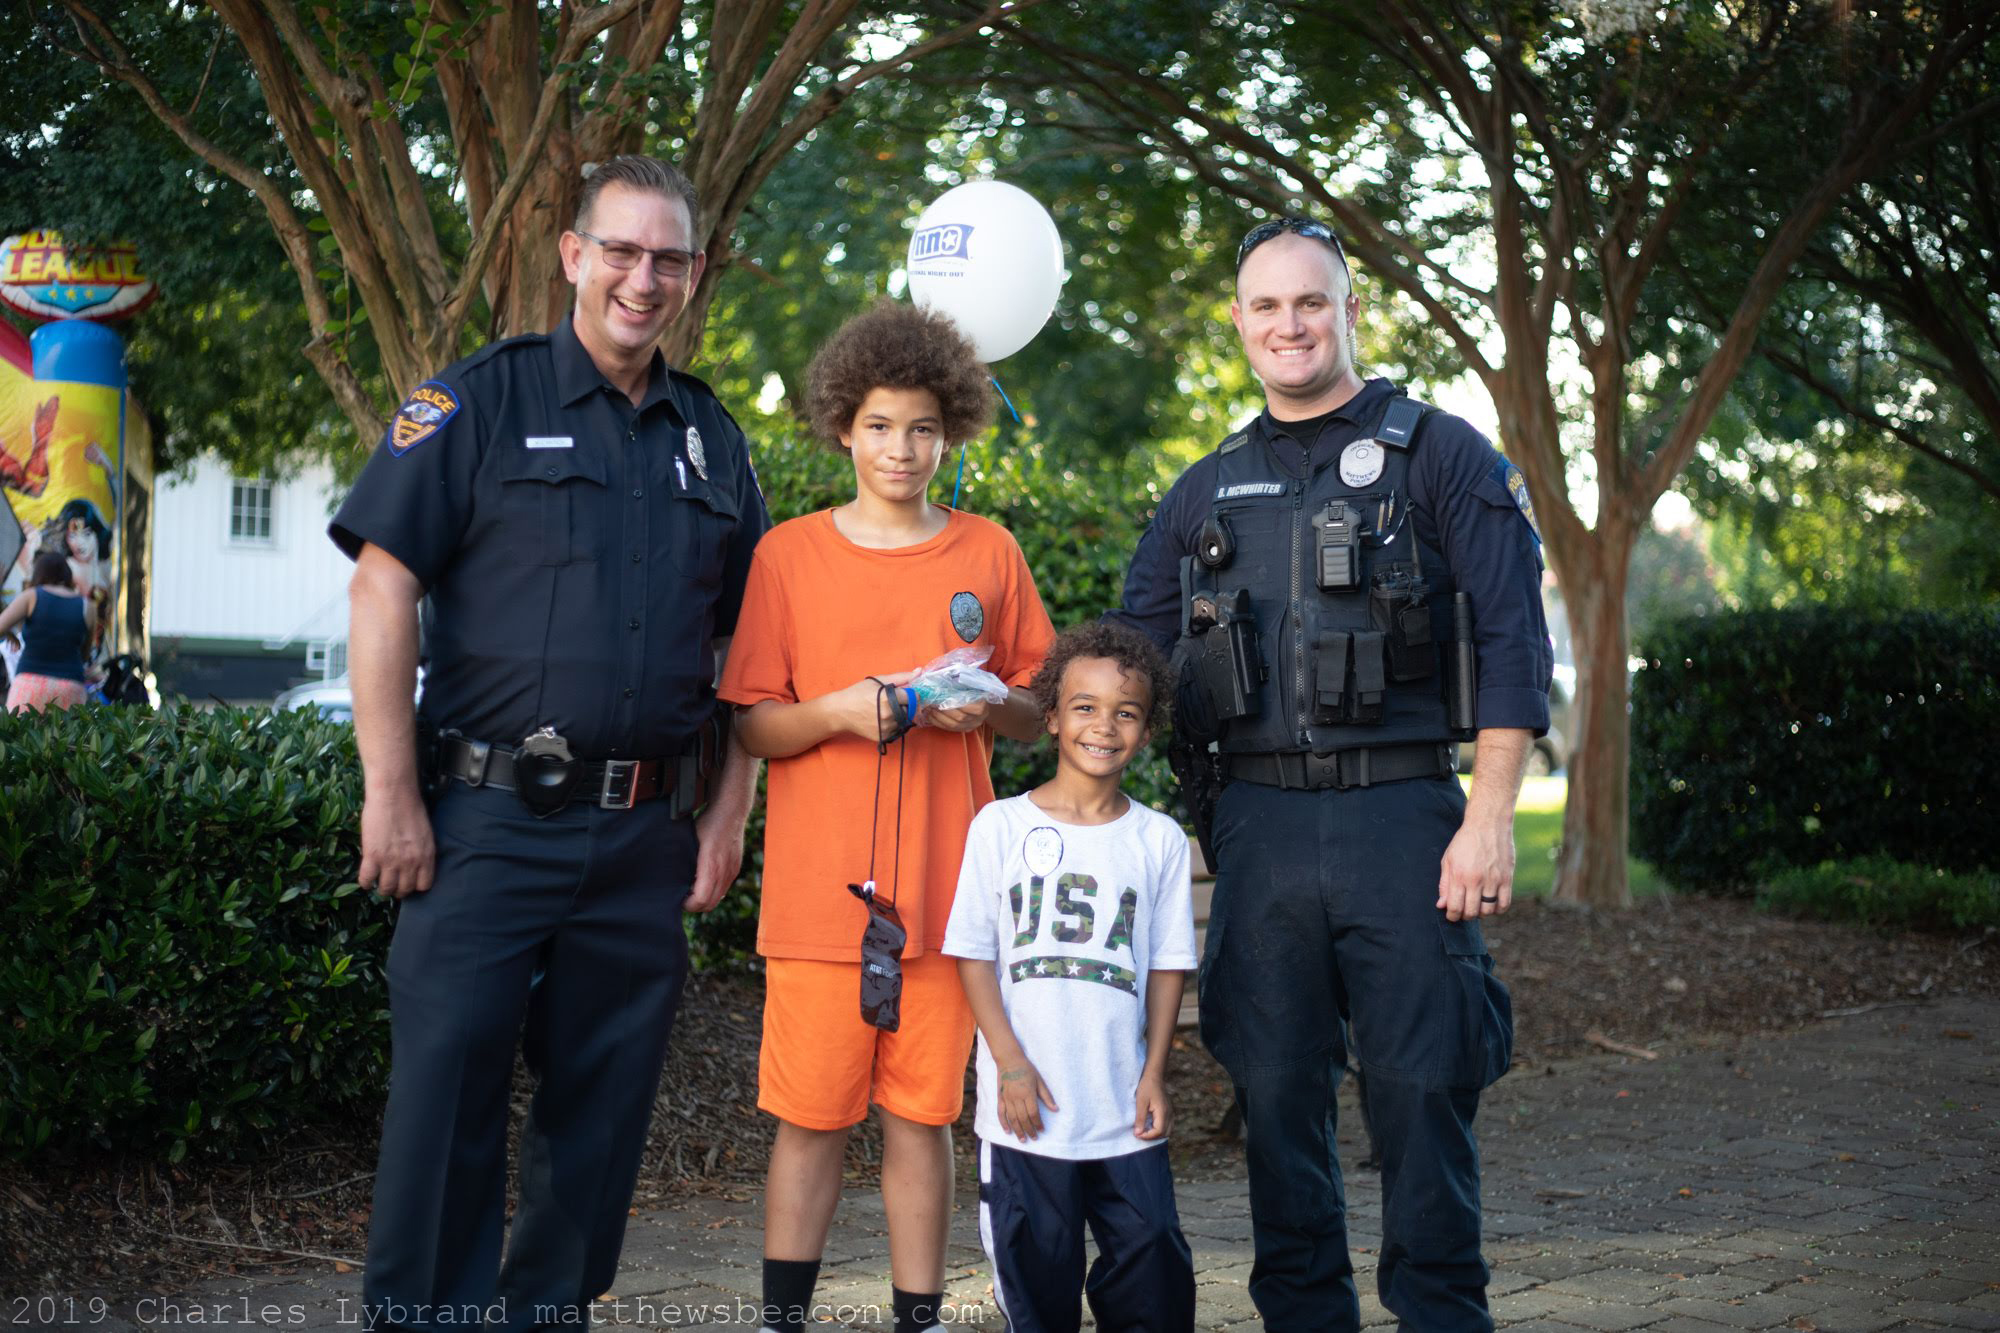 beacon national night out 3.jpg